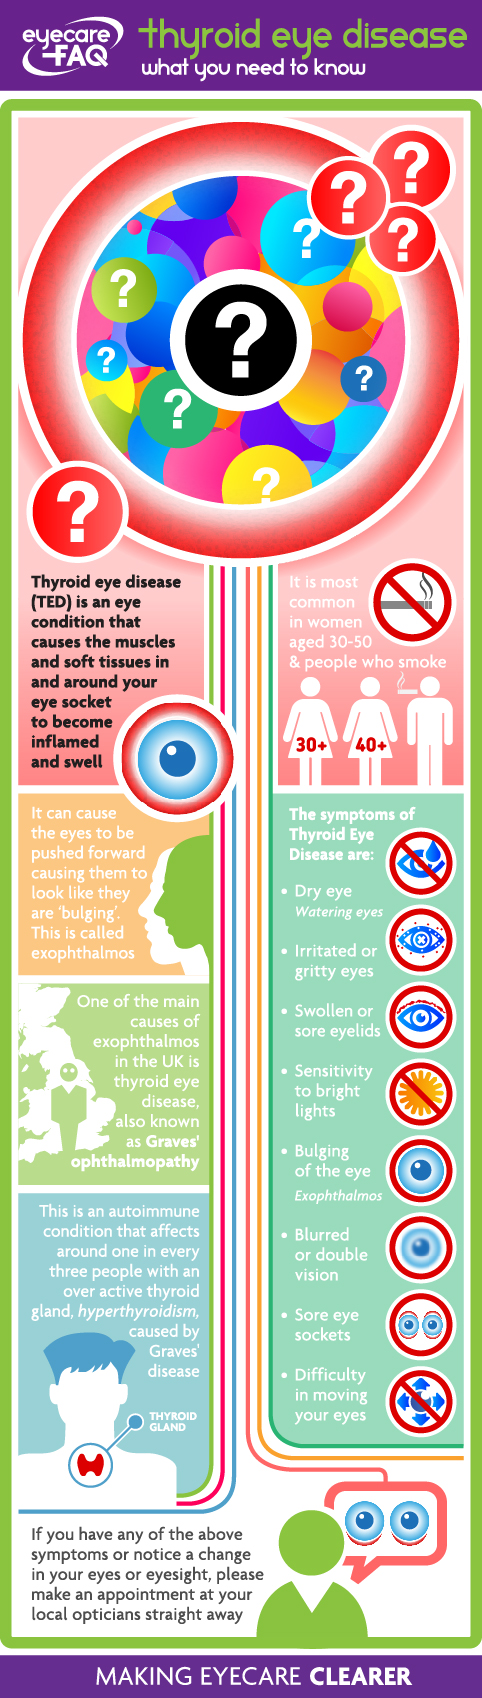 Thyroid Eye Disease What You Need To Know From Eyecarefaq